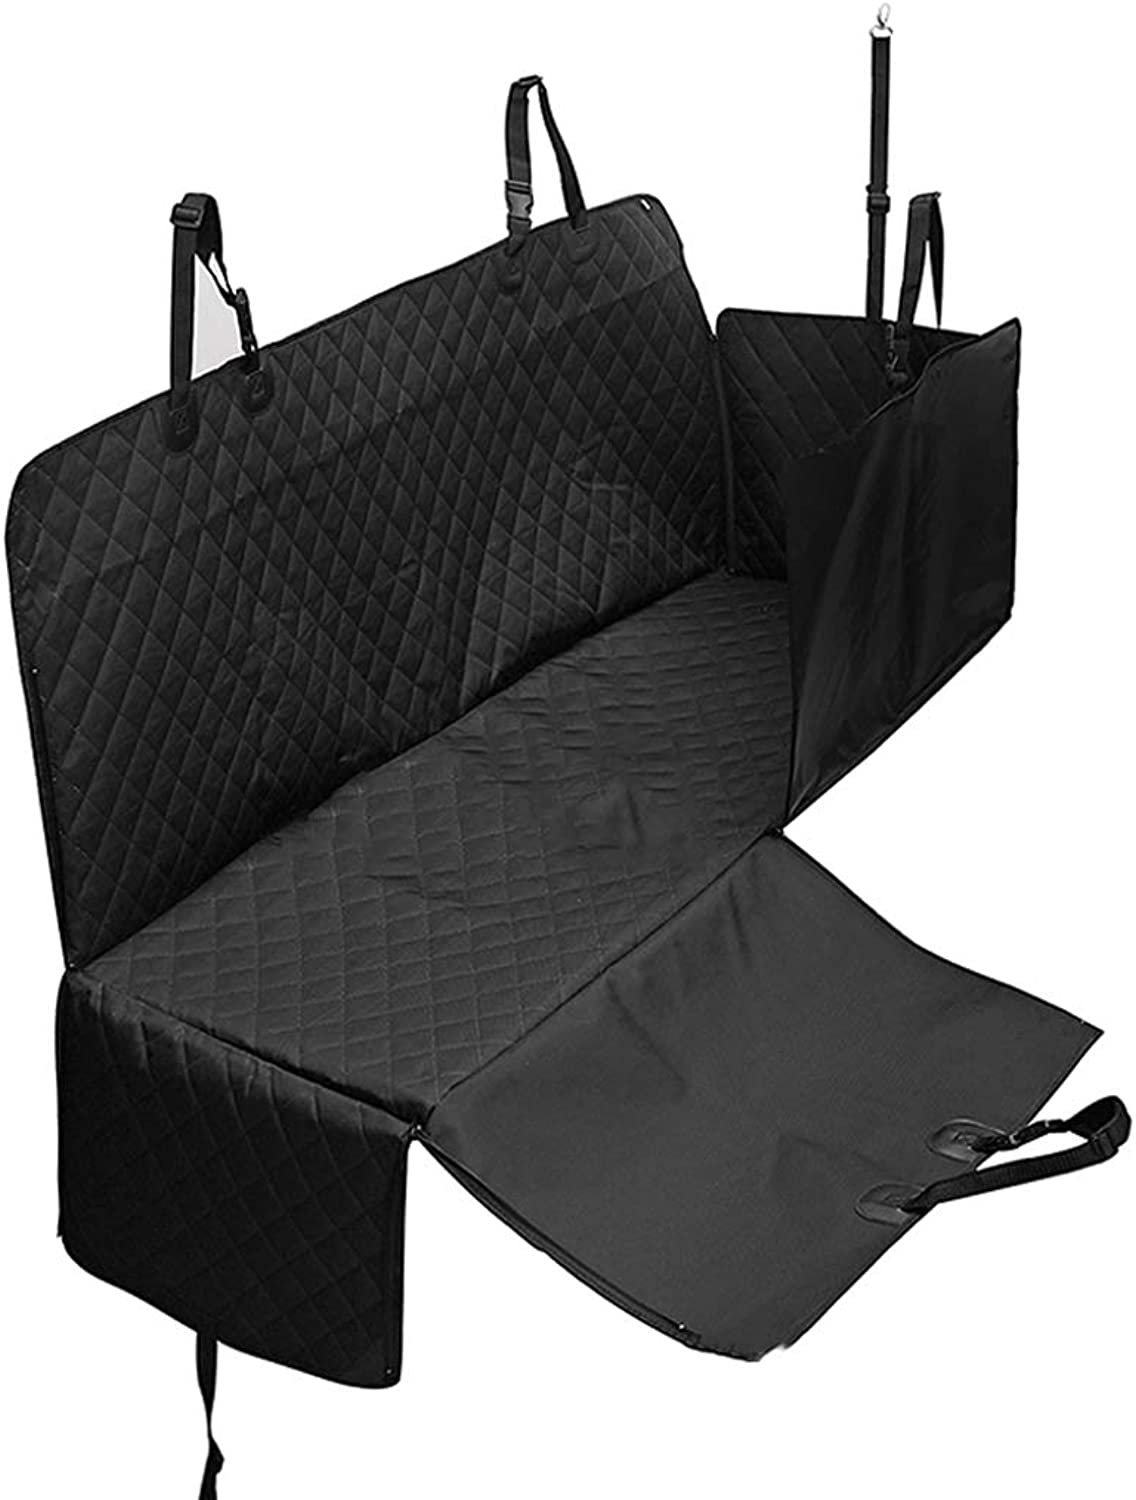 Dog Seat Cover Car Hammock, Nonslip Travel Pet Seat for Car Zipper Design with Extra Side Flaps Adjustable Anchors Rear Backseat Predector (color   Black1, Size   OneSize)